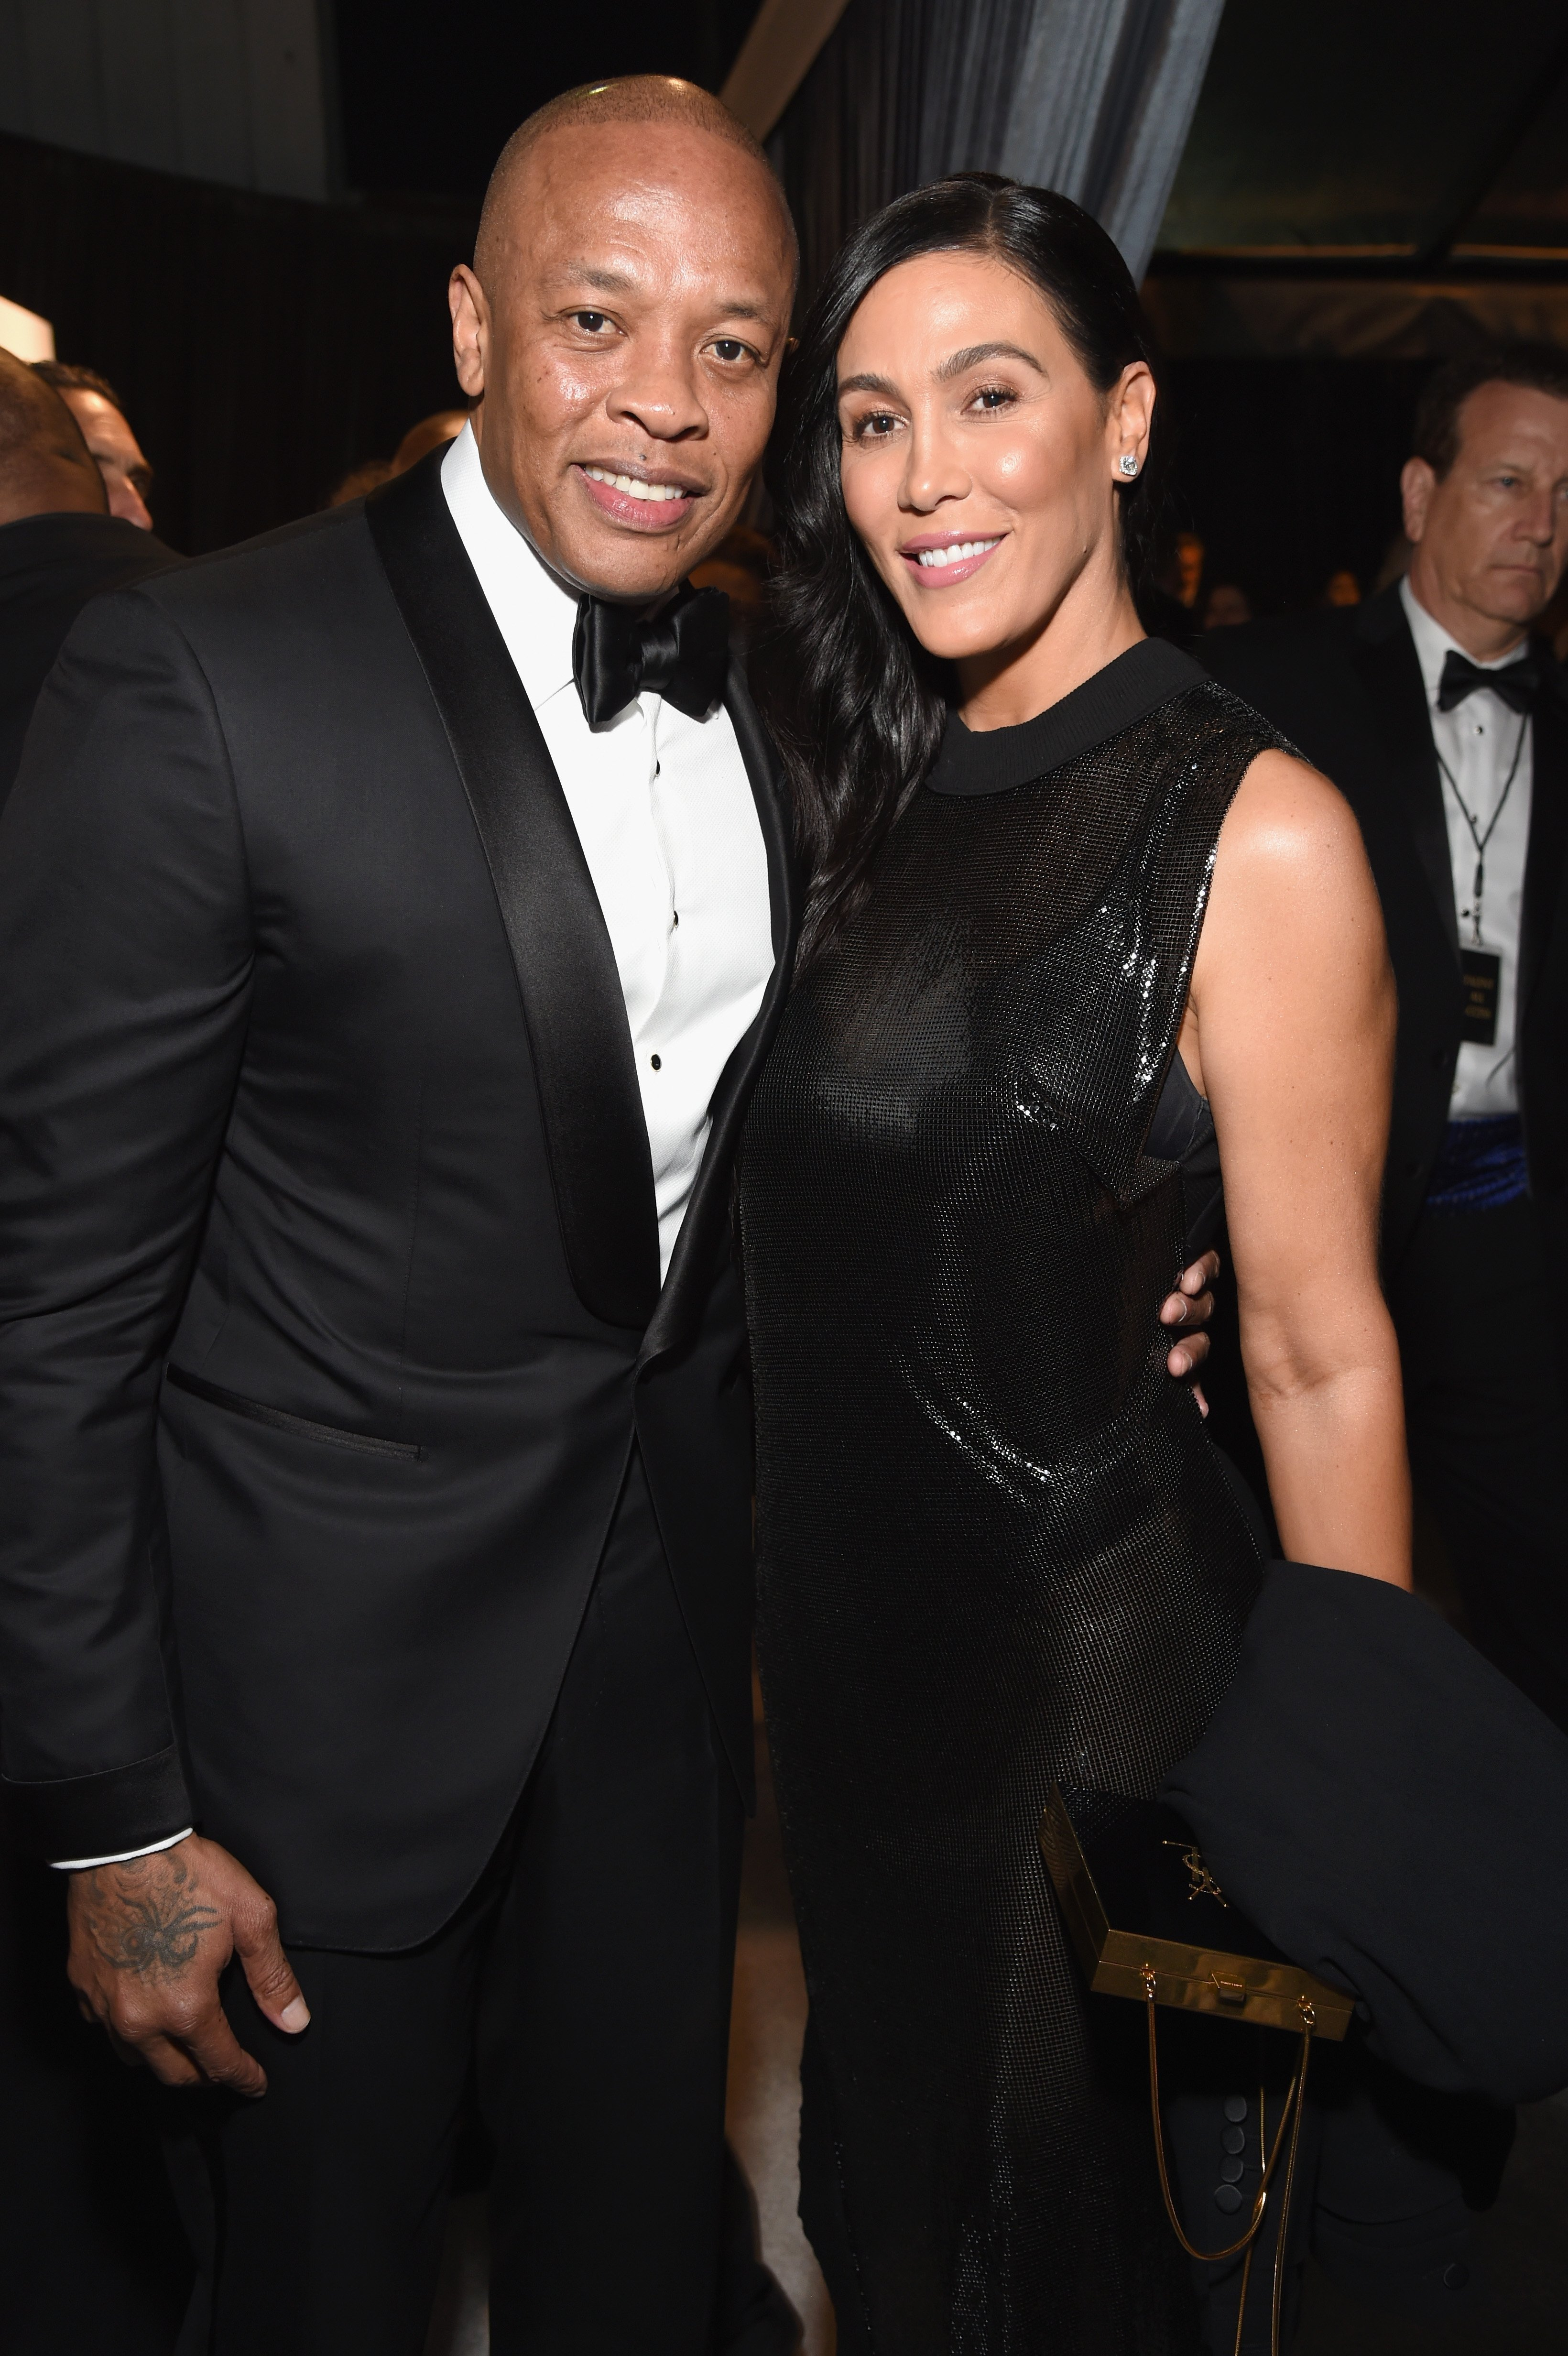 Dr. Dre and Nicole Young at the City of Hope Spirit of Life Gala 2018 at Barker Hangar on October 11, 2018 in Santa Monica, California| Source: Getty Images